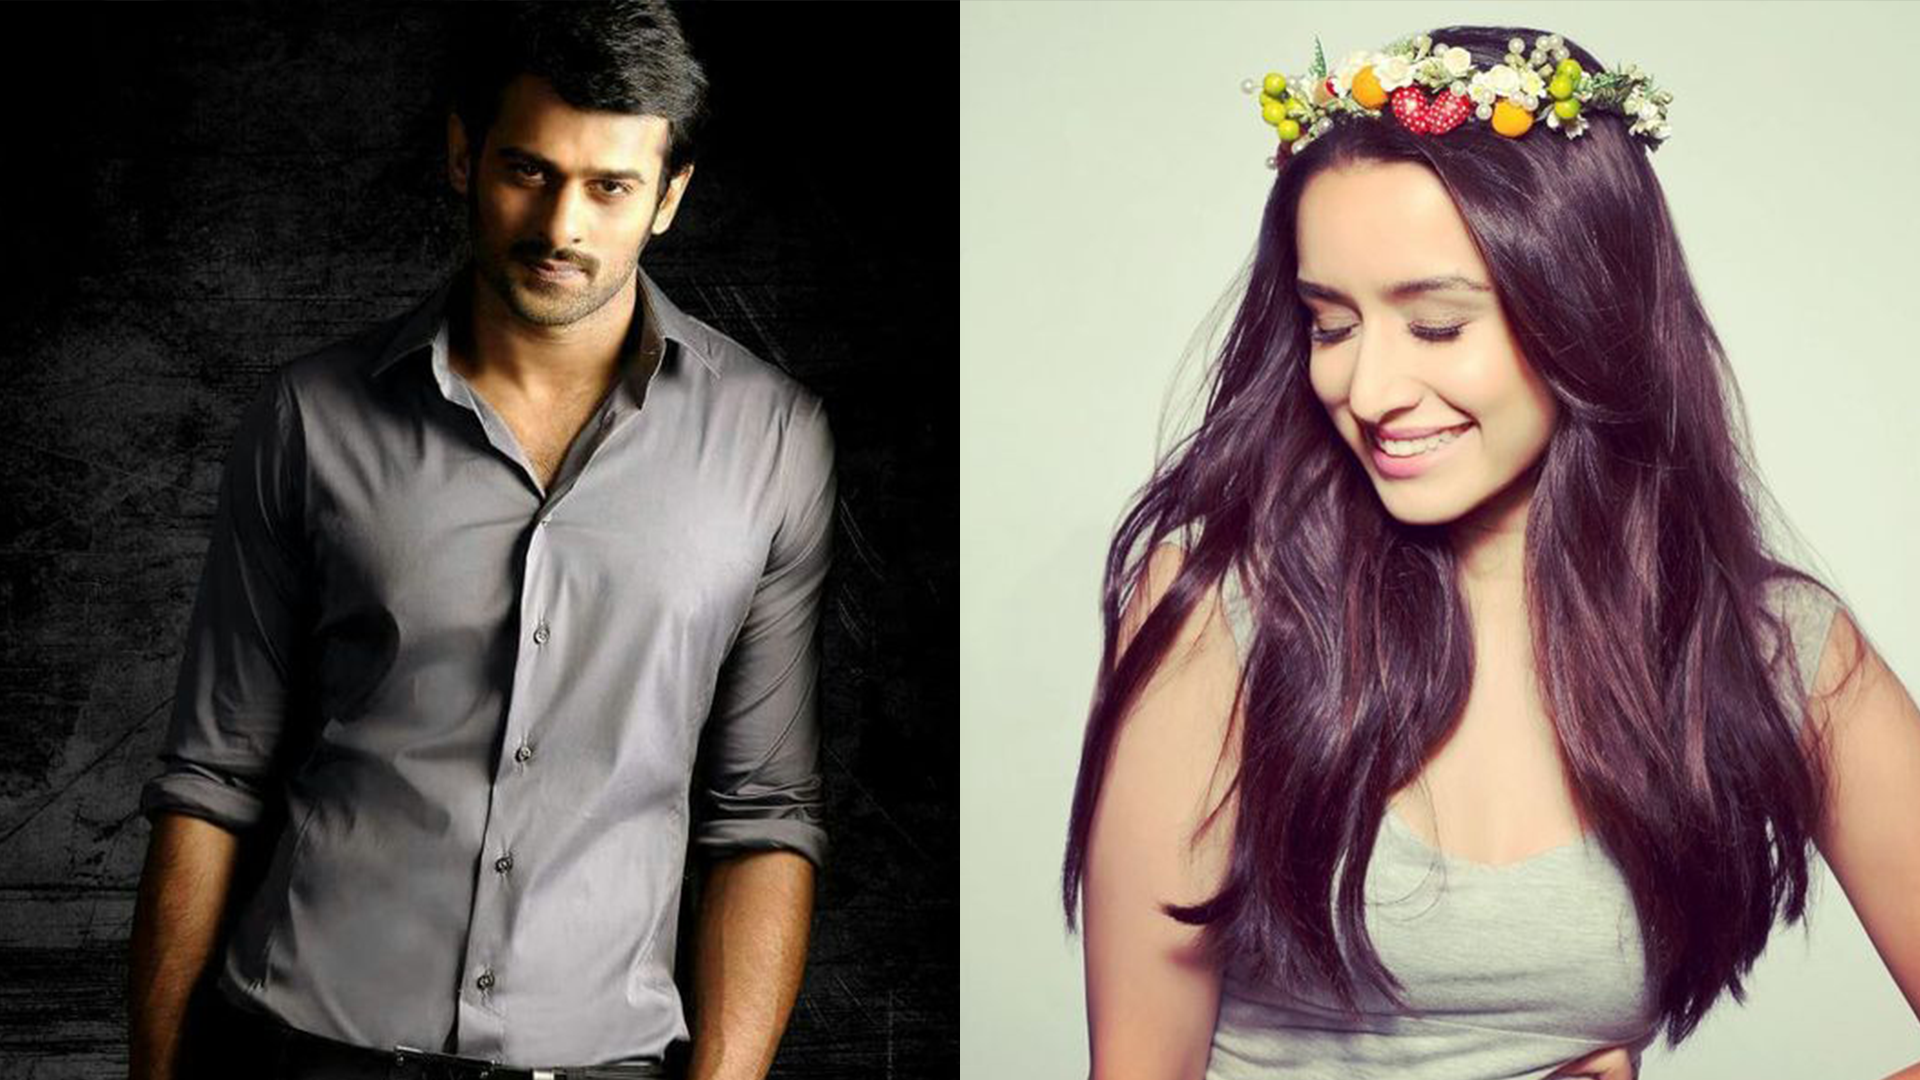 https://cdn.bollywoodbubble.com/wp-content/uploads/2017/12/Prabhas-Shraddha.png